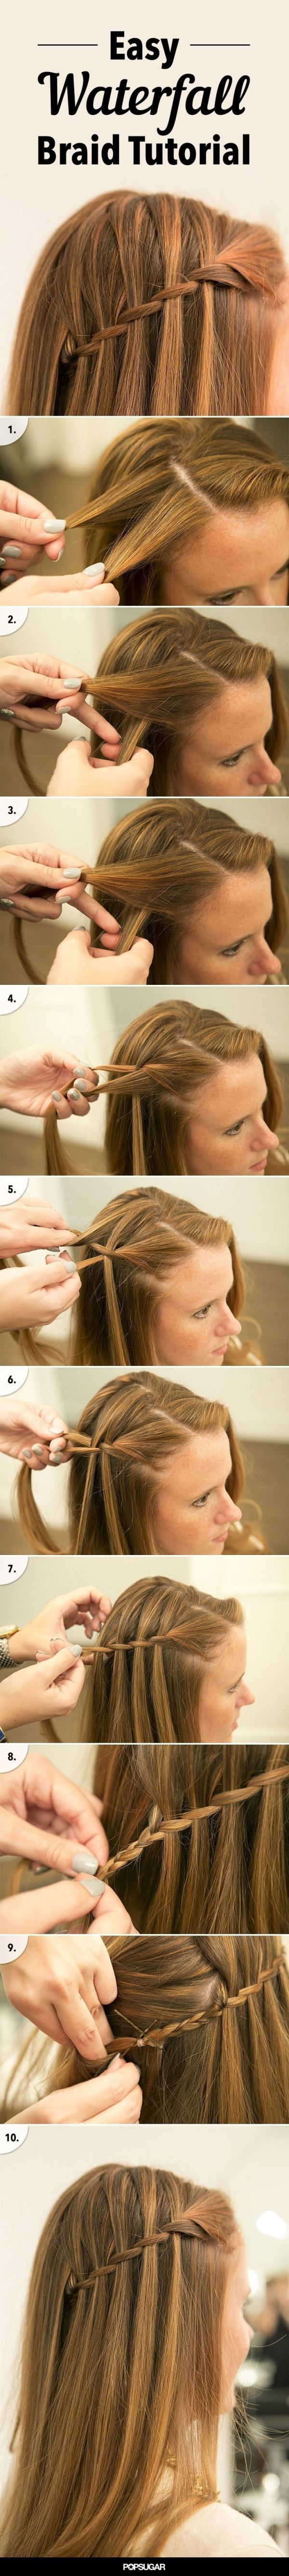 Easy Waterfall Braid Tutorial hair hair ideas diy hair hair tutorials hair ideas braids by belinda